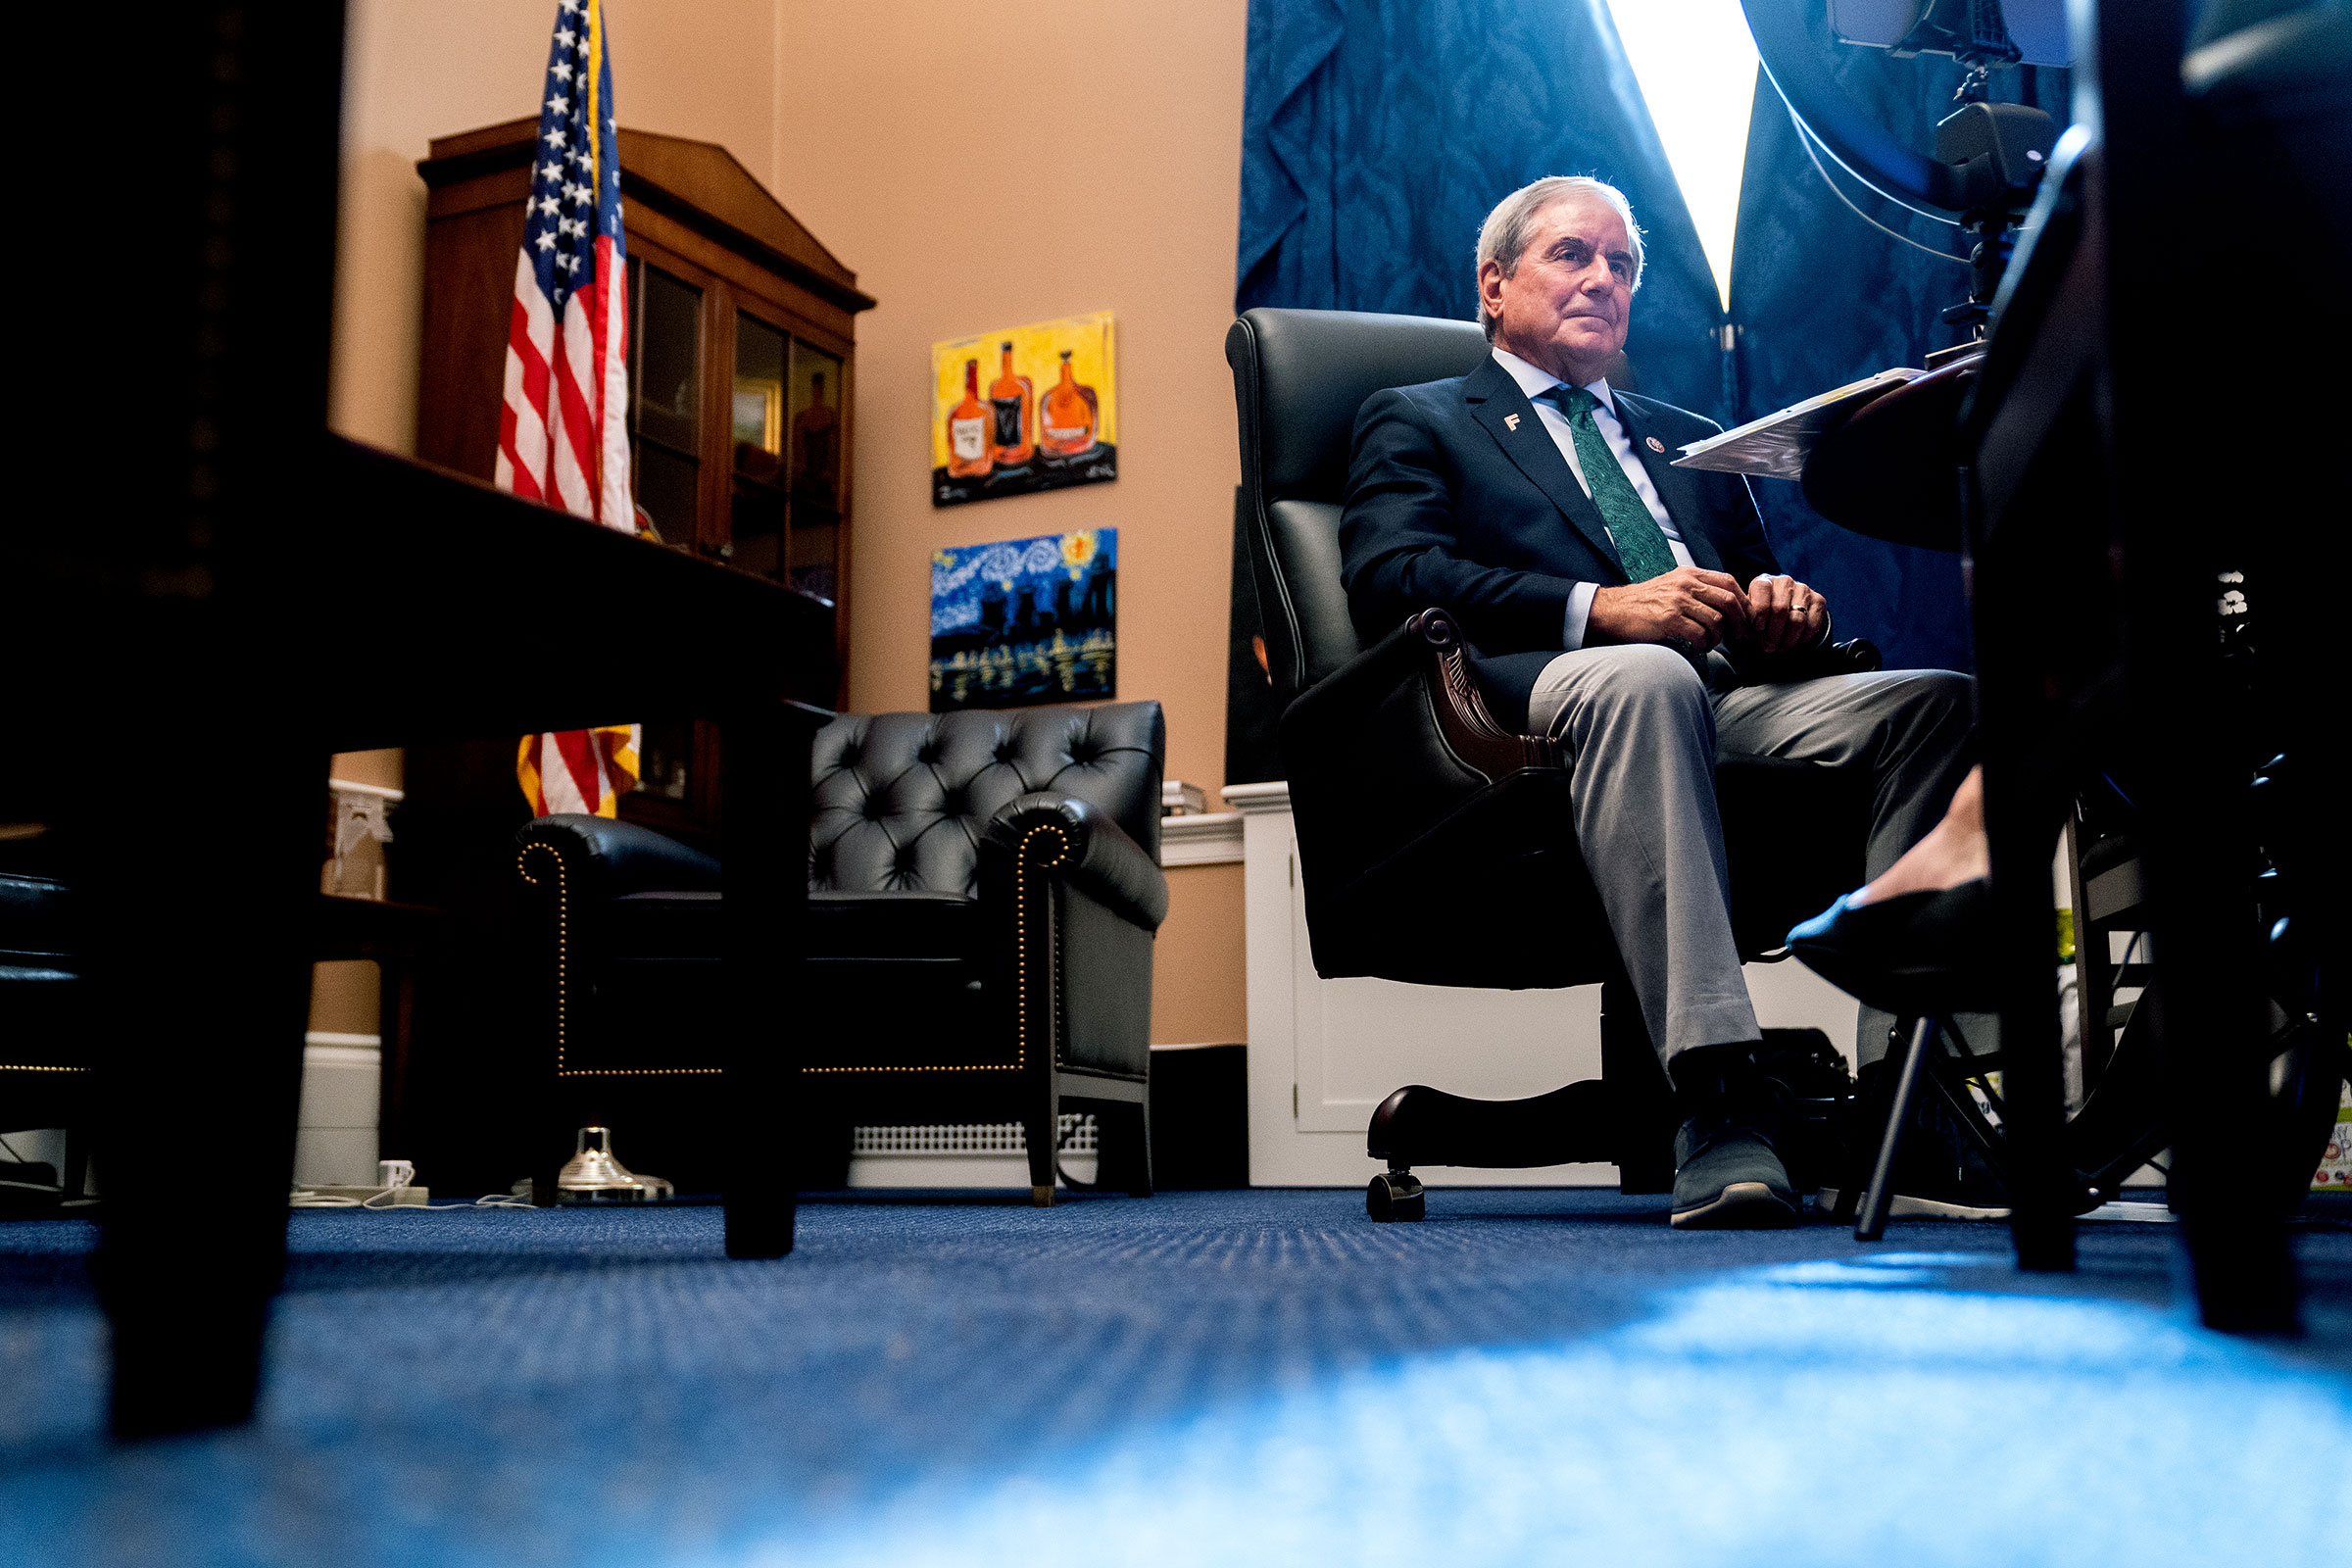 Rep. John Yarmuth listens during a virtual markup in his office on Capitol Hill on Sept. 25, 2021.